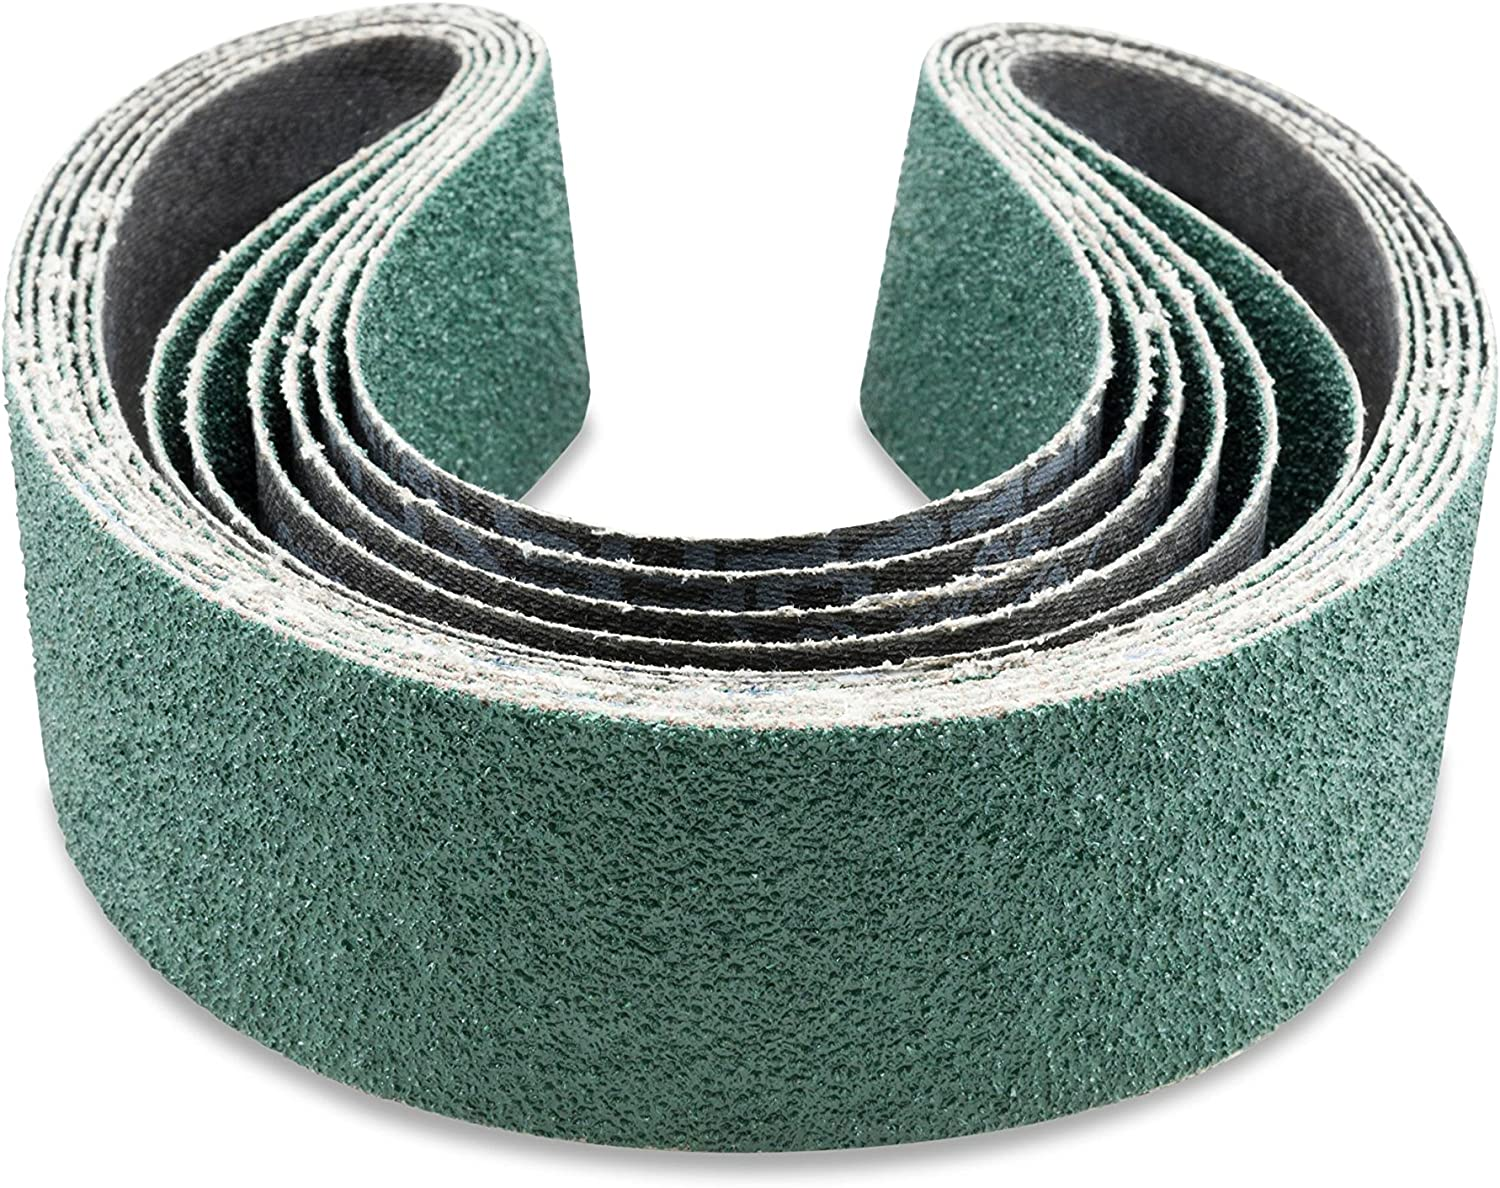 25-Pack VSM Zirconia Better Performance Cloth Belt ZK713X 2-1//2 Inch x 48 Inch 36 Grit X-Weight Backing